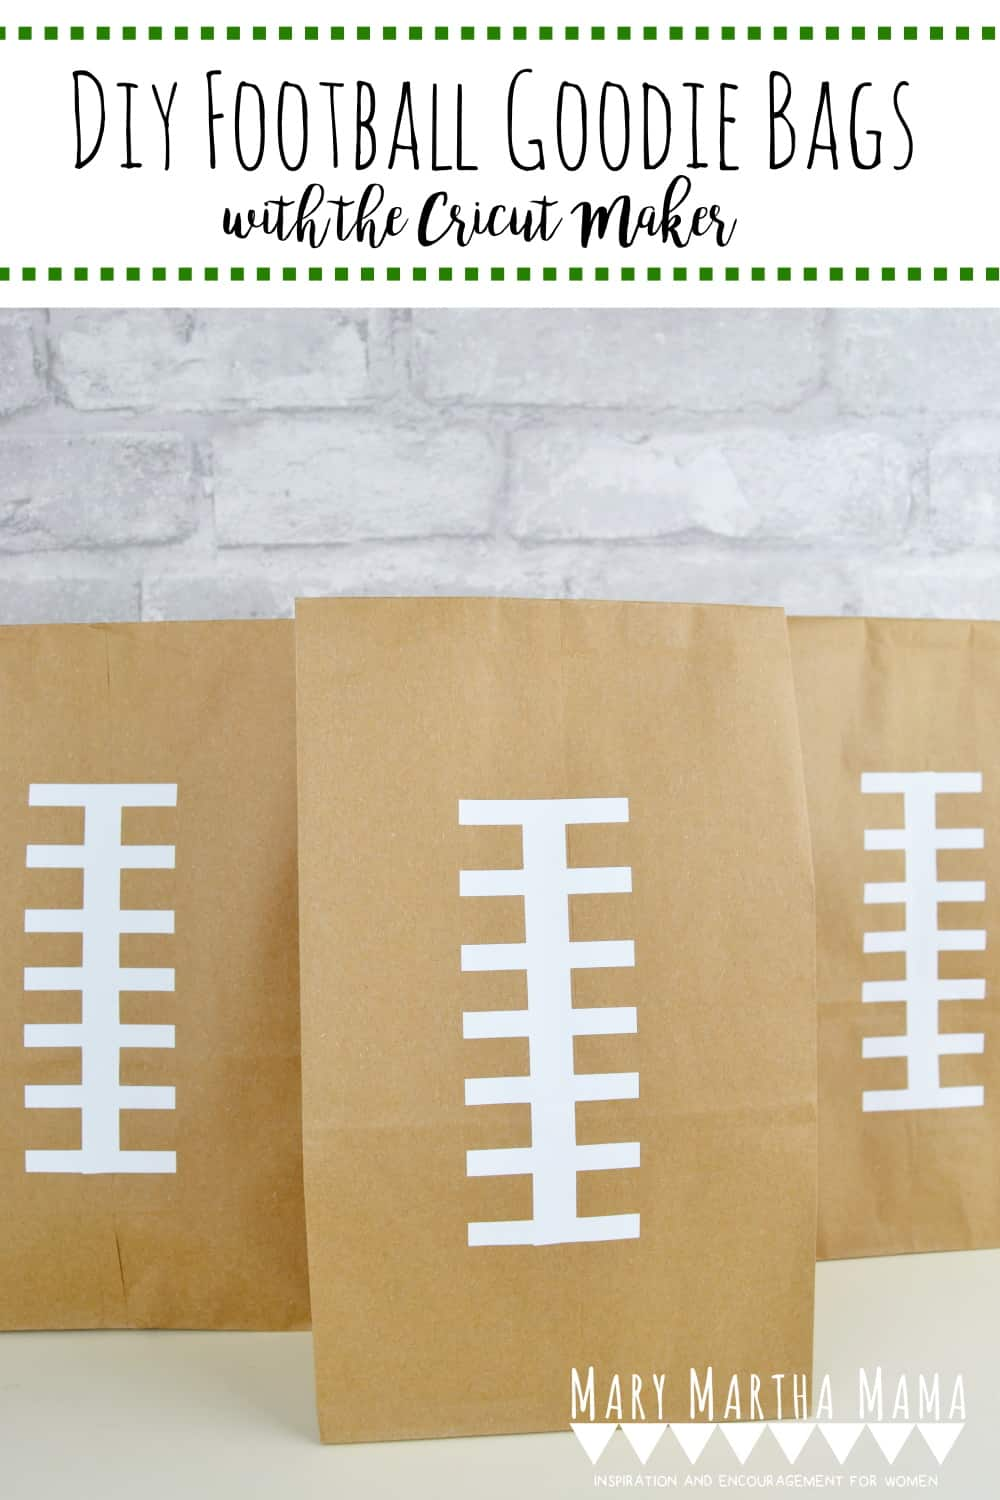 DIY Football Goodie Bags- Make these easy football-themed goodie bags with your Cricut with this free SVG file. #diyfootballgoodiebags #footballsvg #footballlacessvg